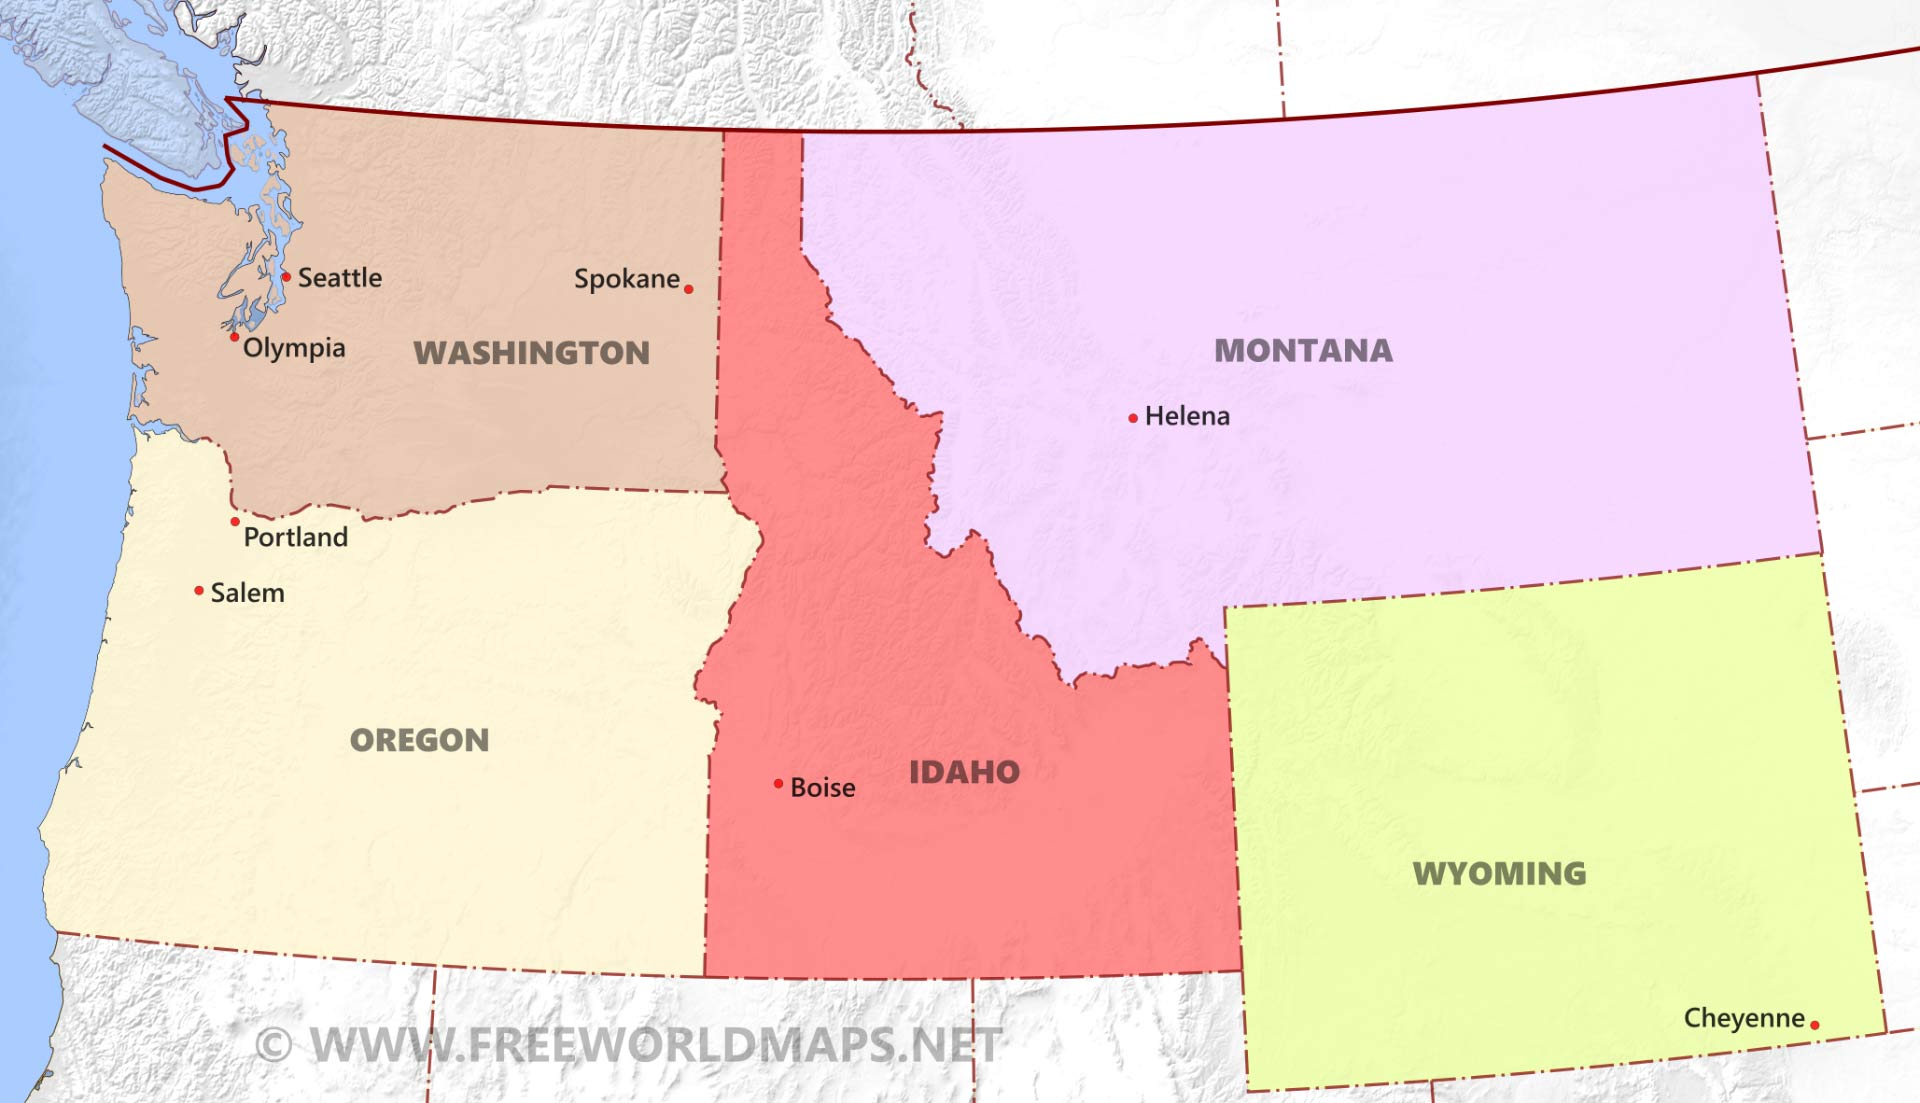 Northwestern US Political Map By Freeworldmapsnet - Montana political map